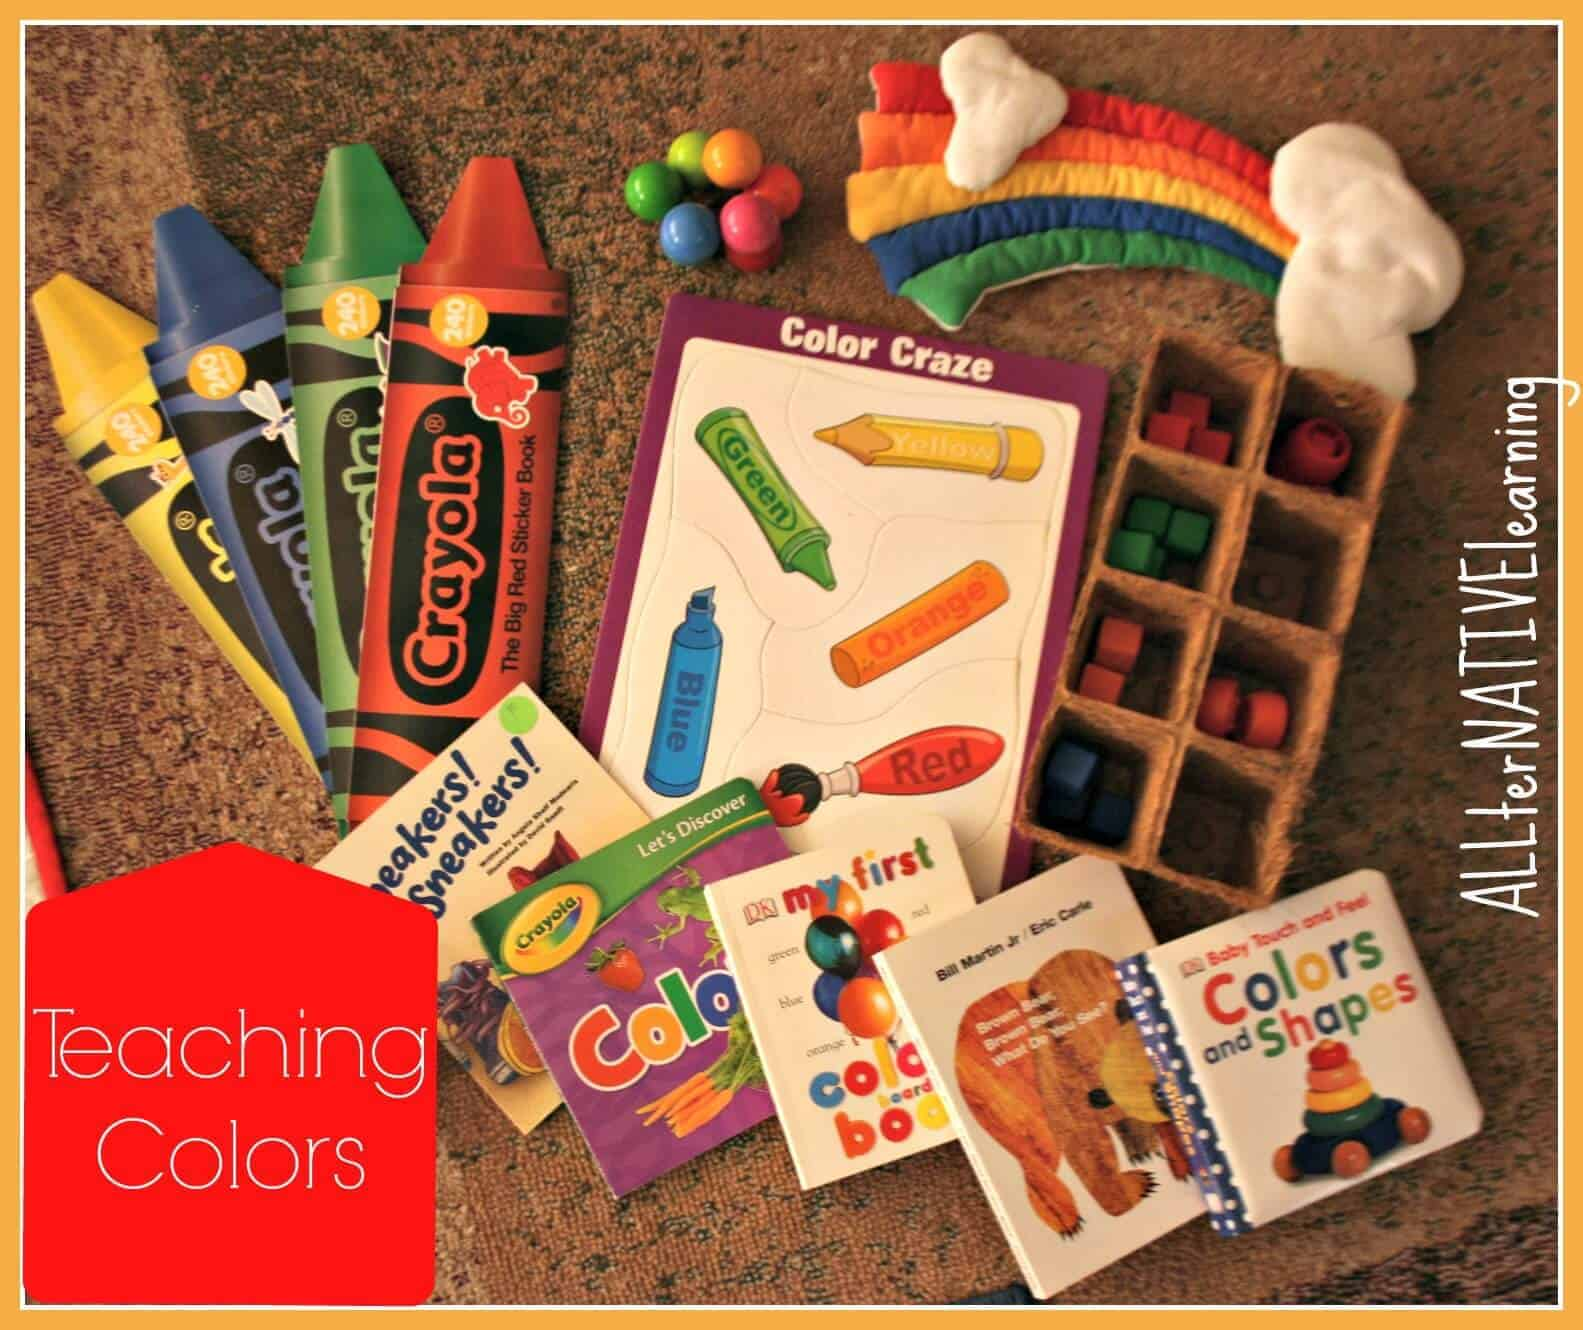 Supplies for teaching colors to toddlers